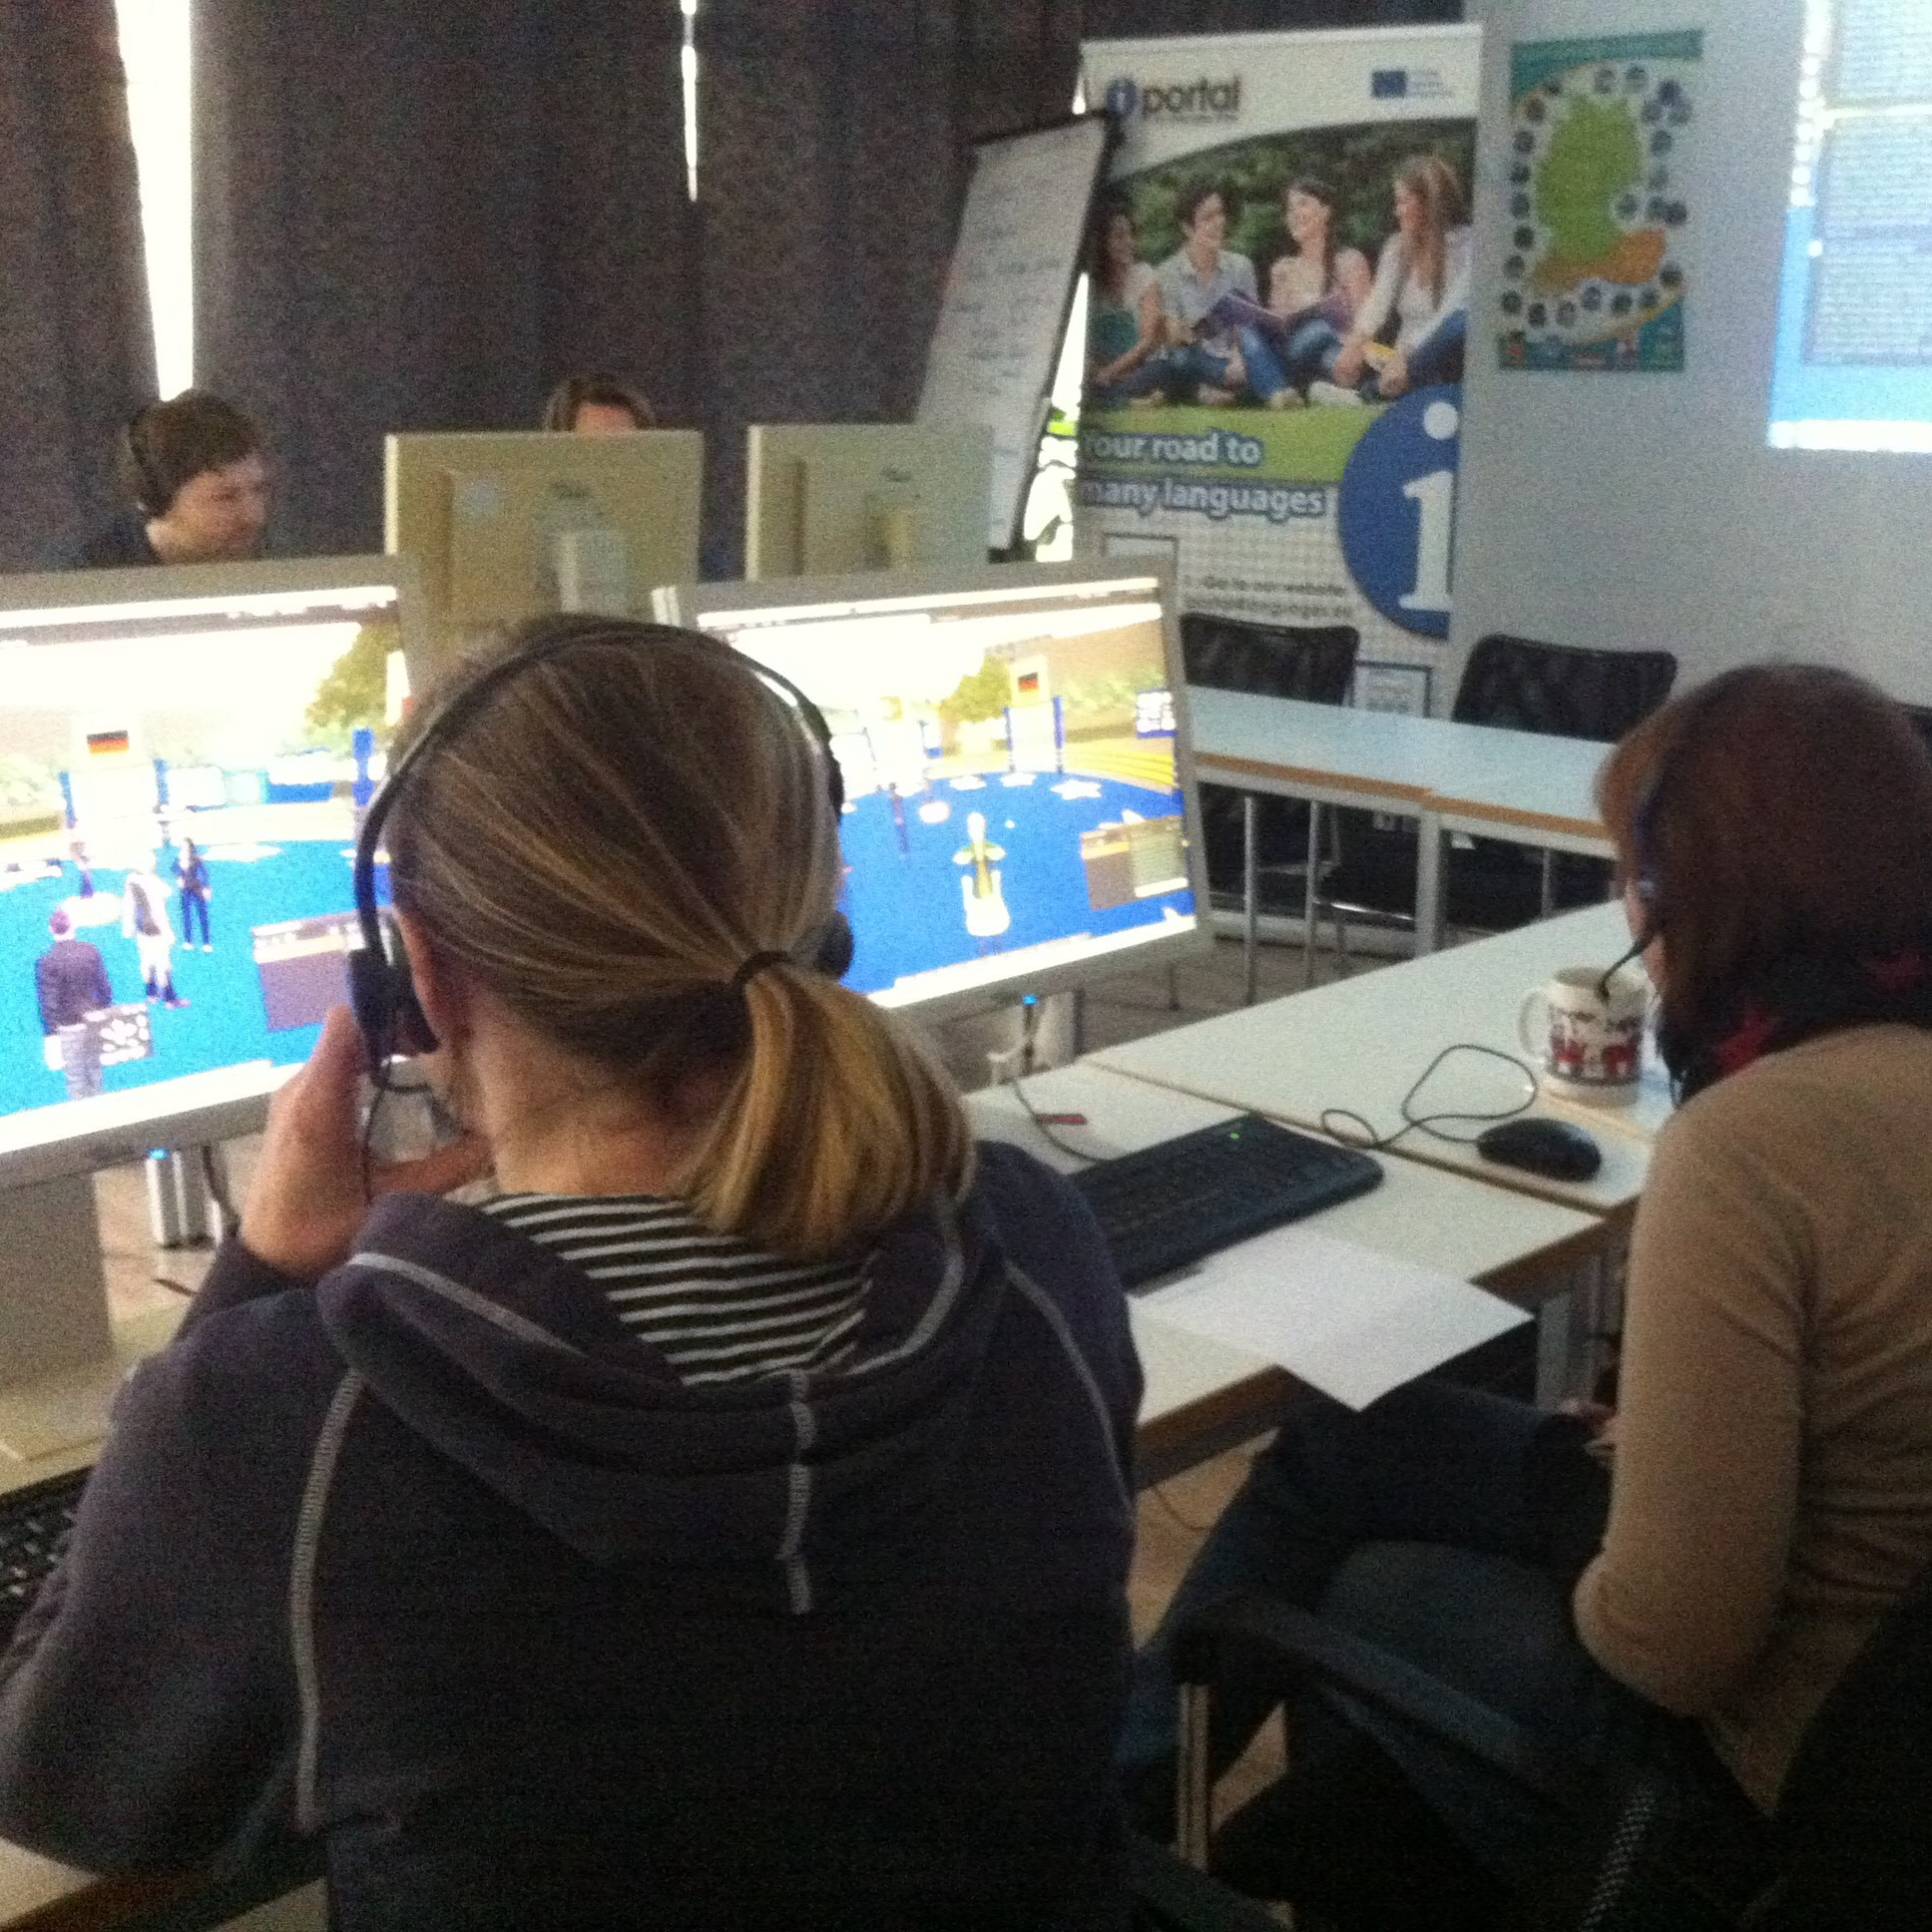 iPortal: Integrated Platform with Online Resources for Teaching of All Languages    iPortal is a platform providing teachers with valuable tools for online teaching of languages, including interactive lesson building tools, virtual classroom and 3D environment for oral skills improvement.   iPortal was a Key Activity 2 (Languages) project funded by the EU under the Lifelong Learning programme. This three year project brought together partners from Bulgaria, Germany, Poland, Spain, UK and Turkey to develop an 'iPortal' – an Integrated Platform with Online Resources for Teaching of All Languages. The project aimed to improve the quality and access to independent language learning tools by combining existing e-learning tools with a 3D learning environment The objectives were to: - Construct a new learning environment framework - Incorporate established language learning resources and methodologies including 3D simulation, video, audio, m-learning and social networking - Improve access to learning resources in English, German, Spanish, Polish, Bulgarian and Turkish - Develop a Second Life facility to enable learners to meet and communicate on-line - Create an on-line network of language centres and freelance teachers The platform enables teachers to teach students of all nationalities in different languages in an attractive, interactive and effective way.  For more information, please, visit the  project website  Project ID number: 531337-1-LLP-2012-1-BG-KA2-KA2MP